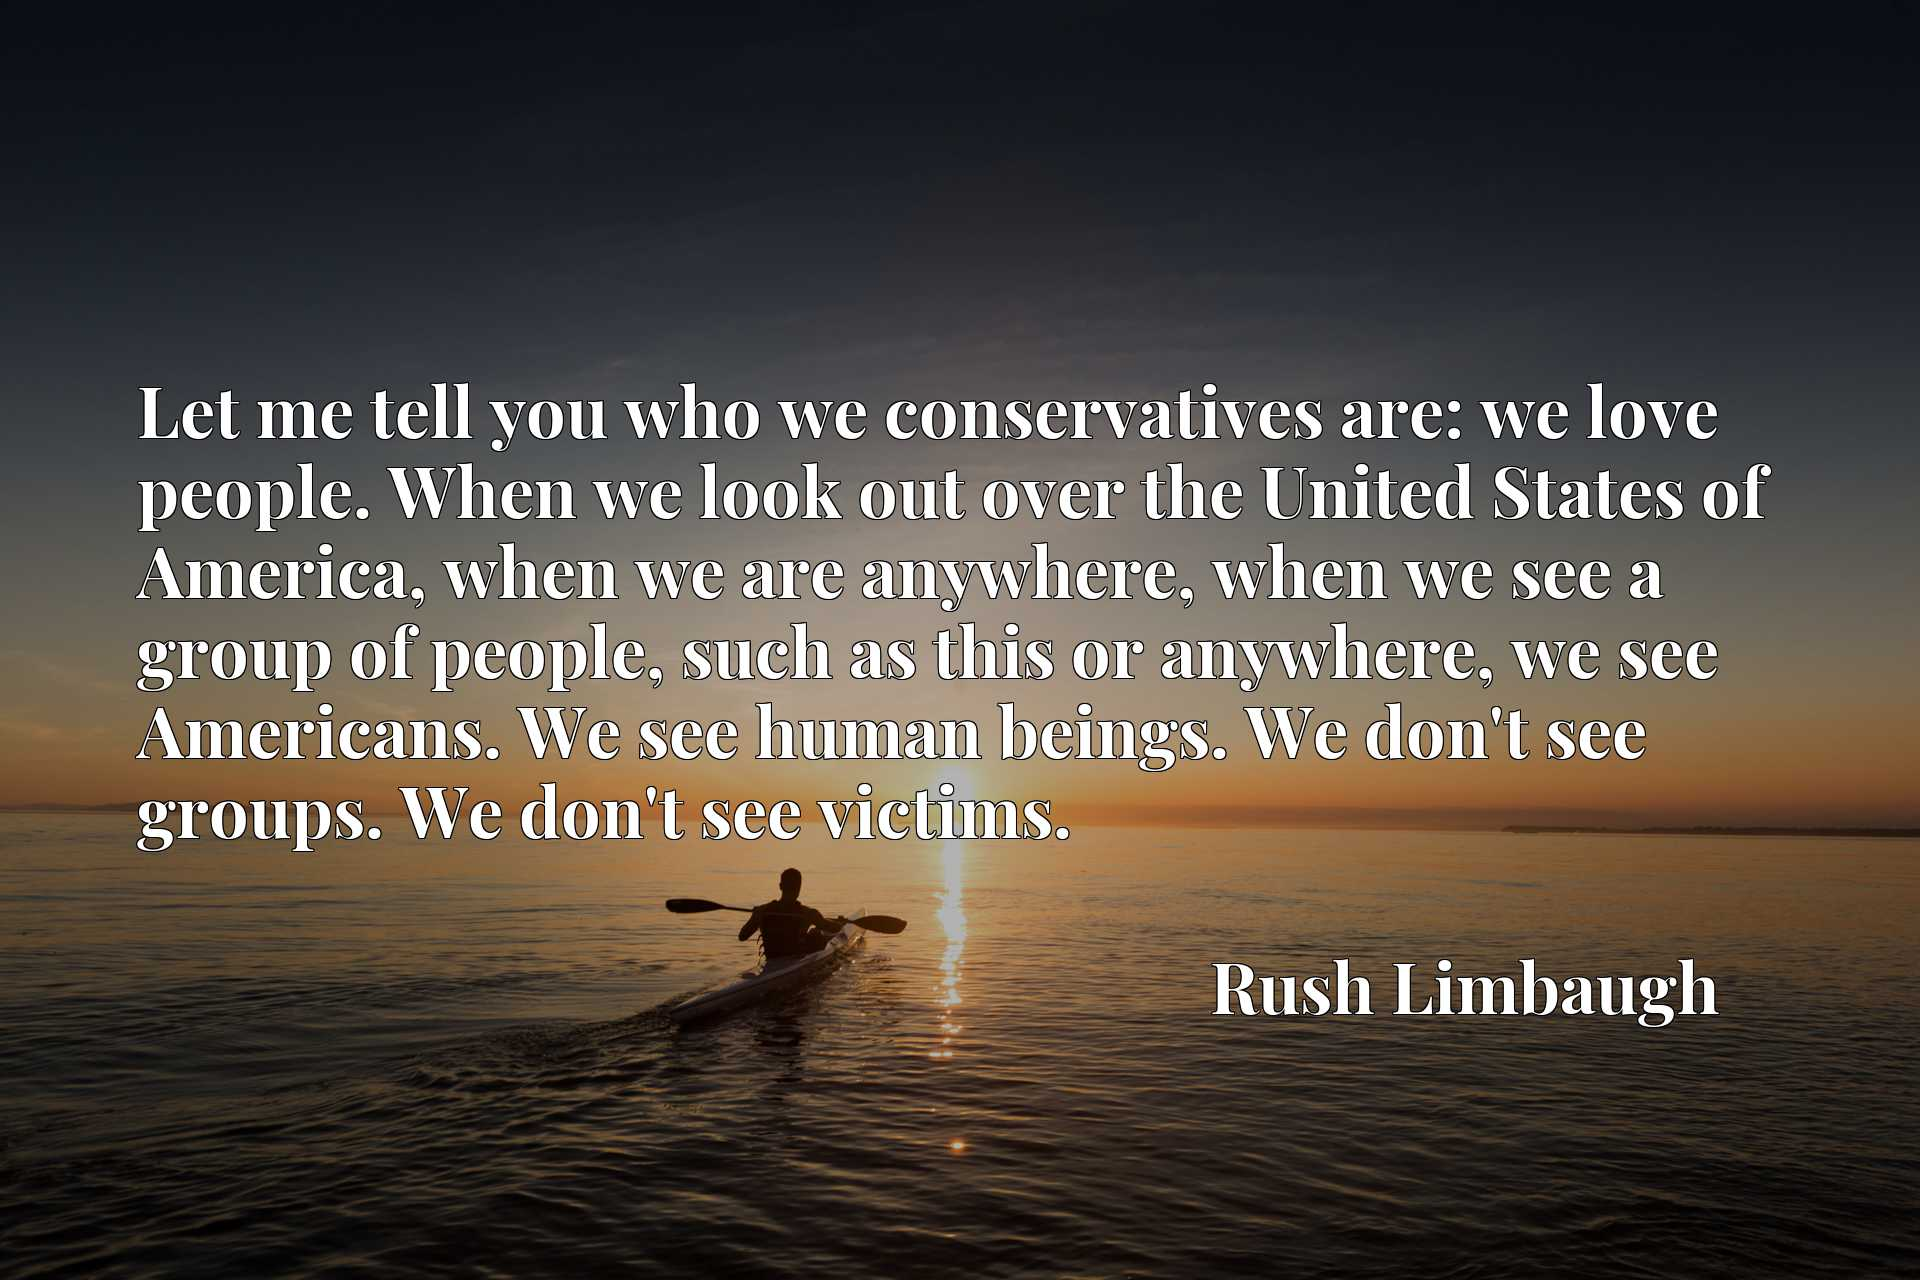 Let me tell you who we conservatives are: we love people. When we look out over the United States of America, when we are anywhere, when we see a group of people, such as this or anywhere, we see Americans. We see human beings. We don't see groups. We don't see victims.